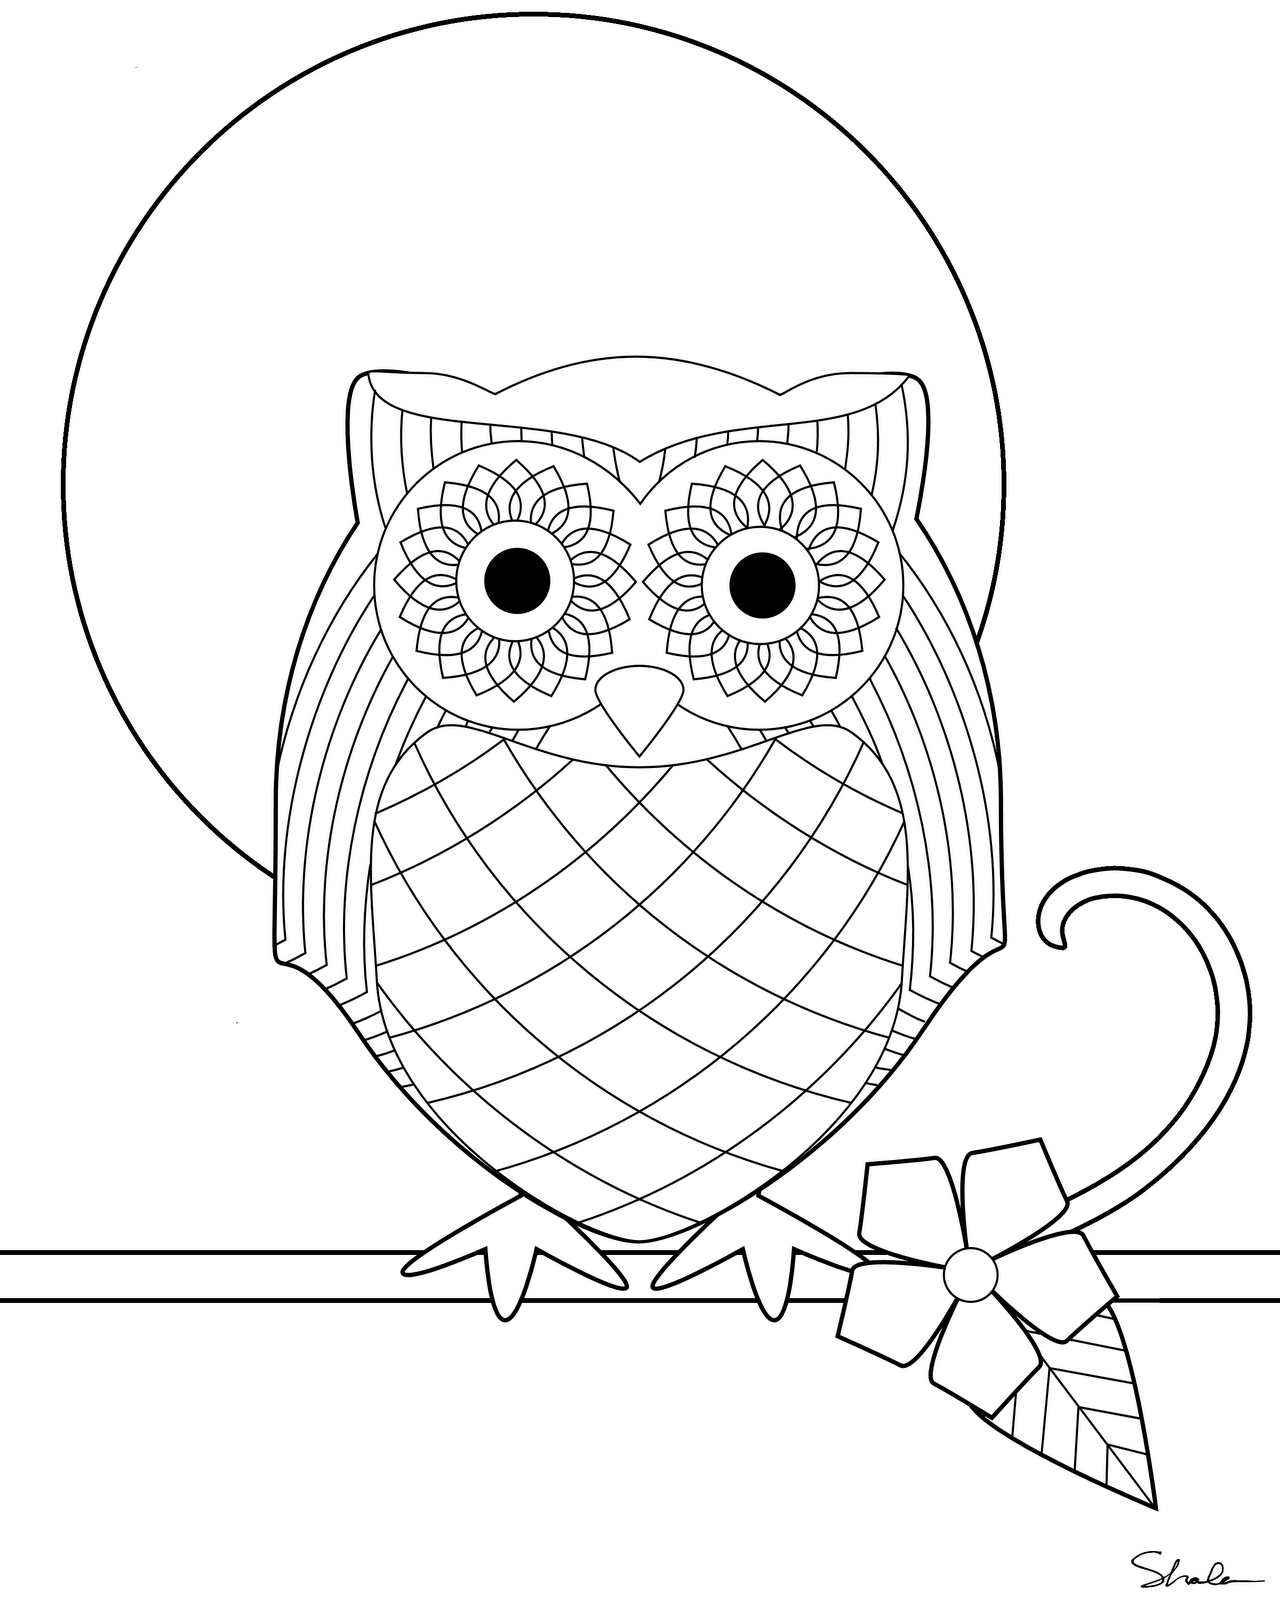 Owl - coloring pages - for adults | Colouring | Pinterest ...